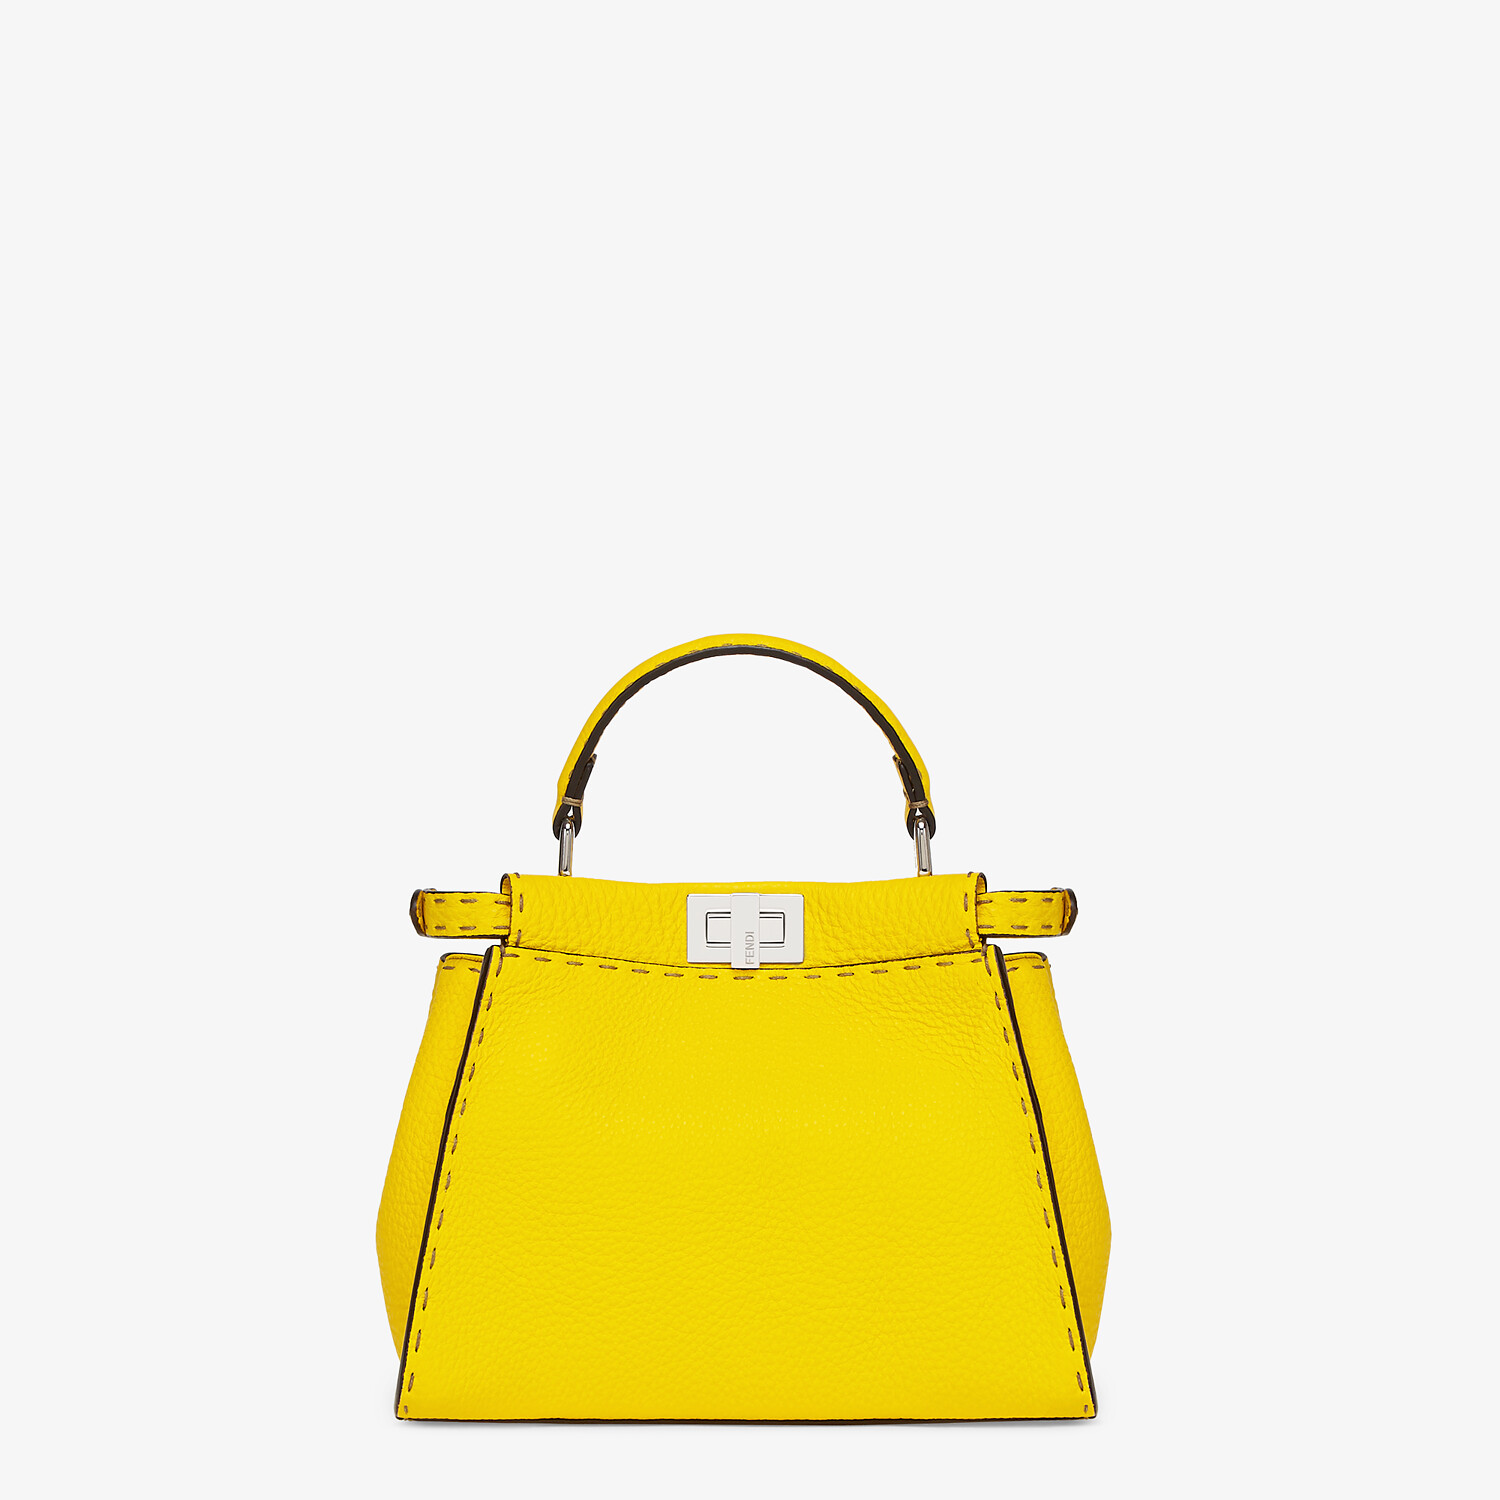 FENDI PEEKABOO ICONIC MINI - Yellow Cuoio Romano leather bag - view 3 detail